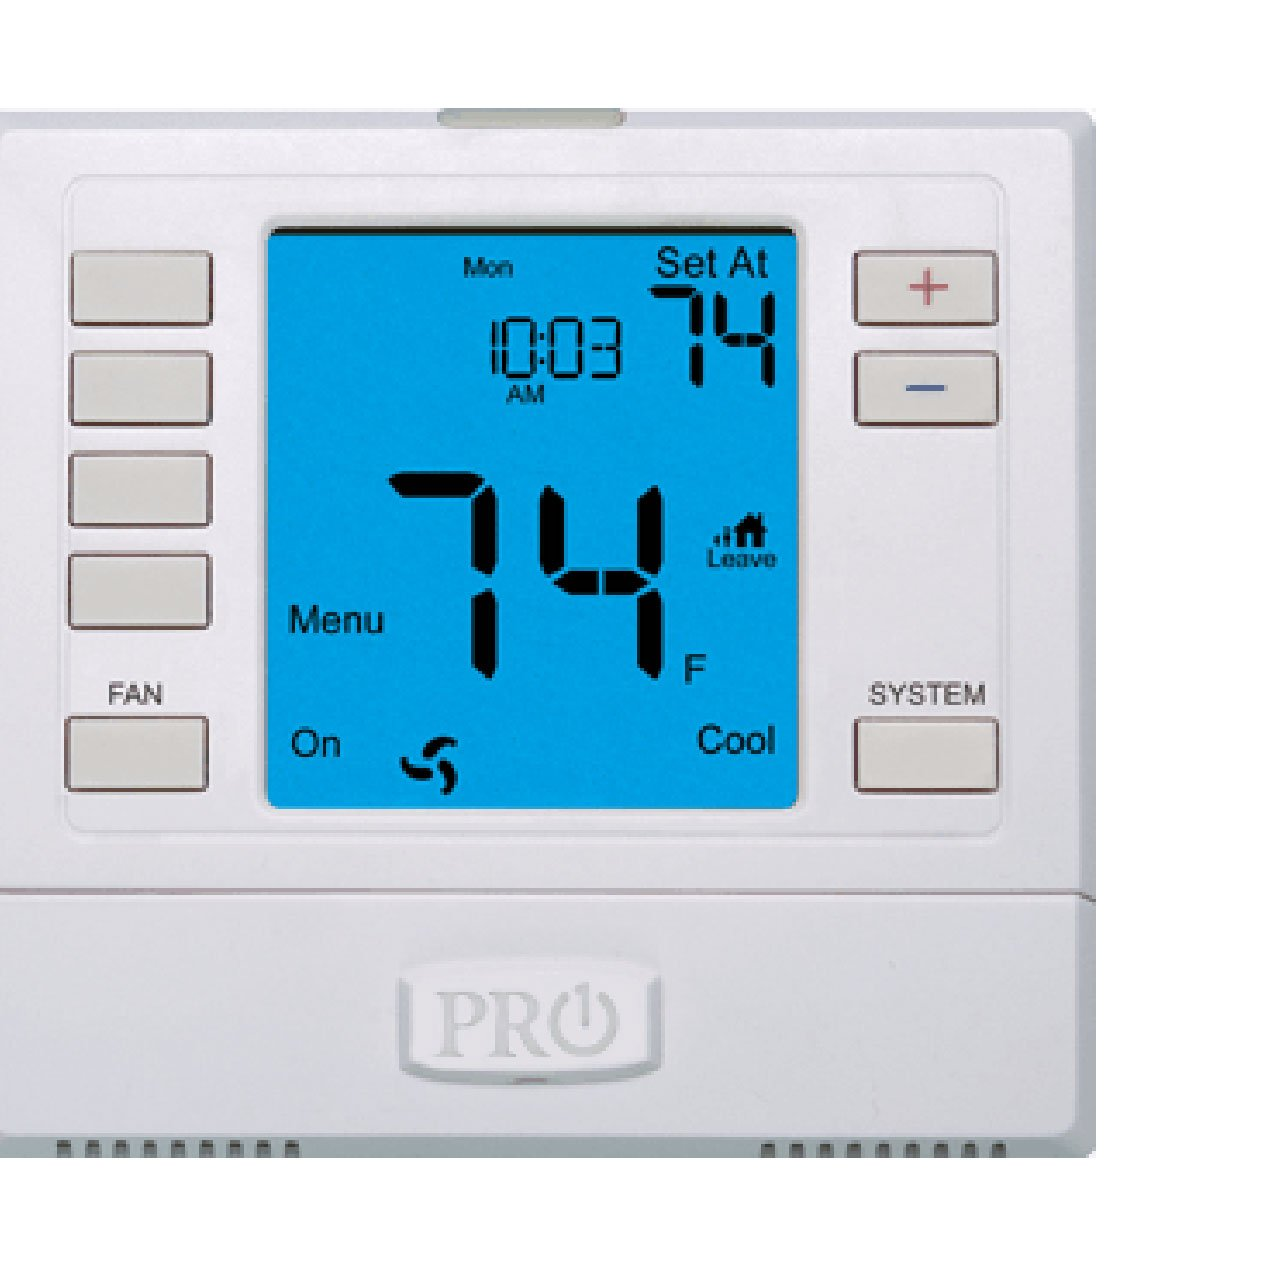 Pro1 Iaq T755 3 Hot2 Cold 7 Day Thermostat With 4 Sq Inch Screen